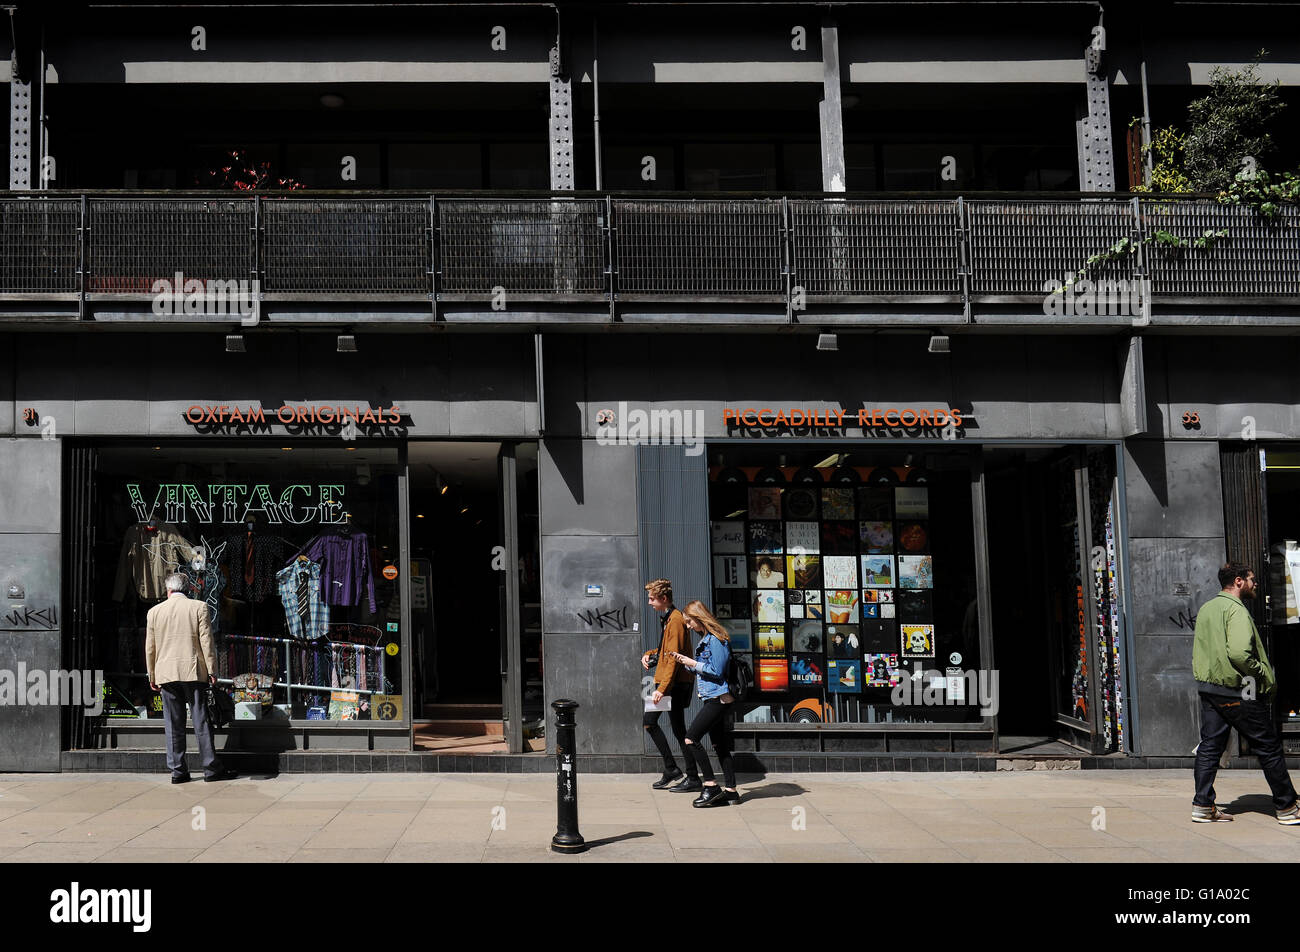 Piccadilly records, Oldham Street, Northern Quarter, Manchester, Tuesday May 10, 2016. - Stock Image